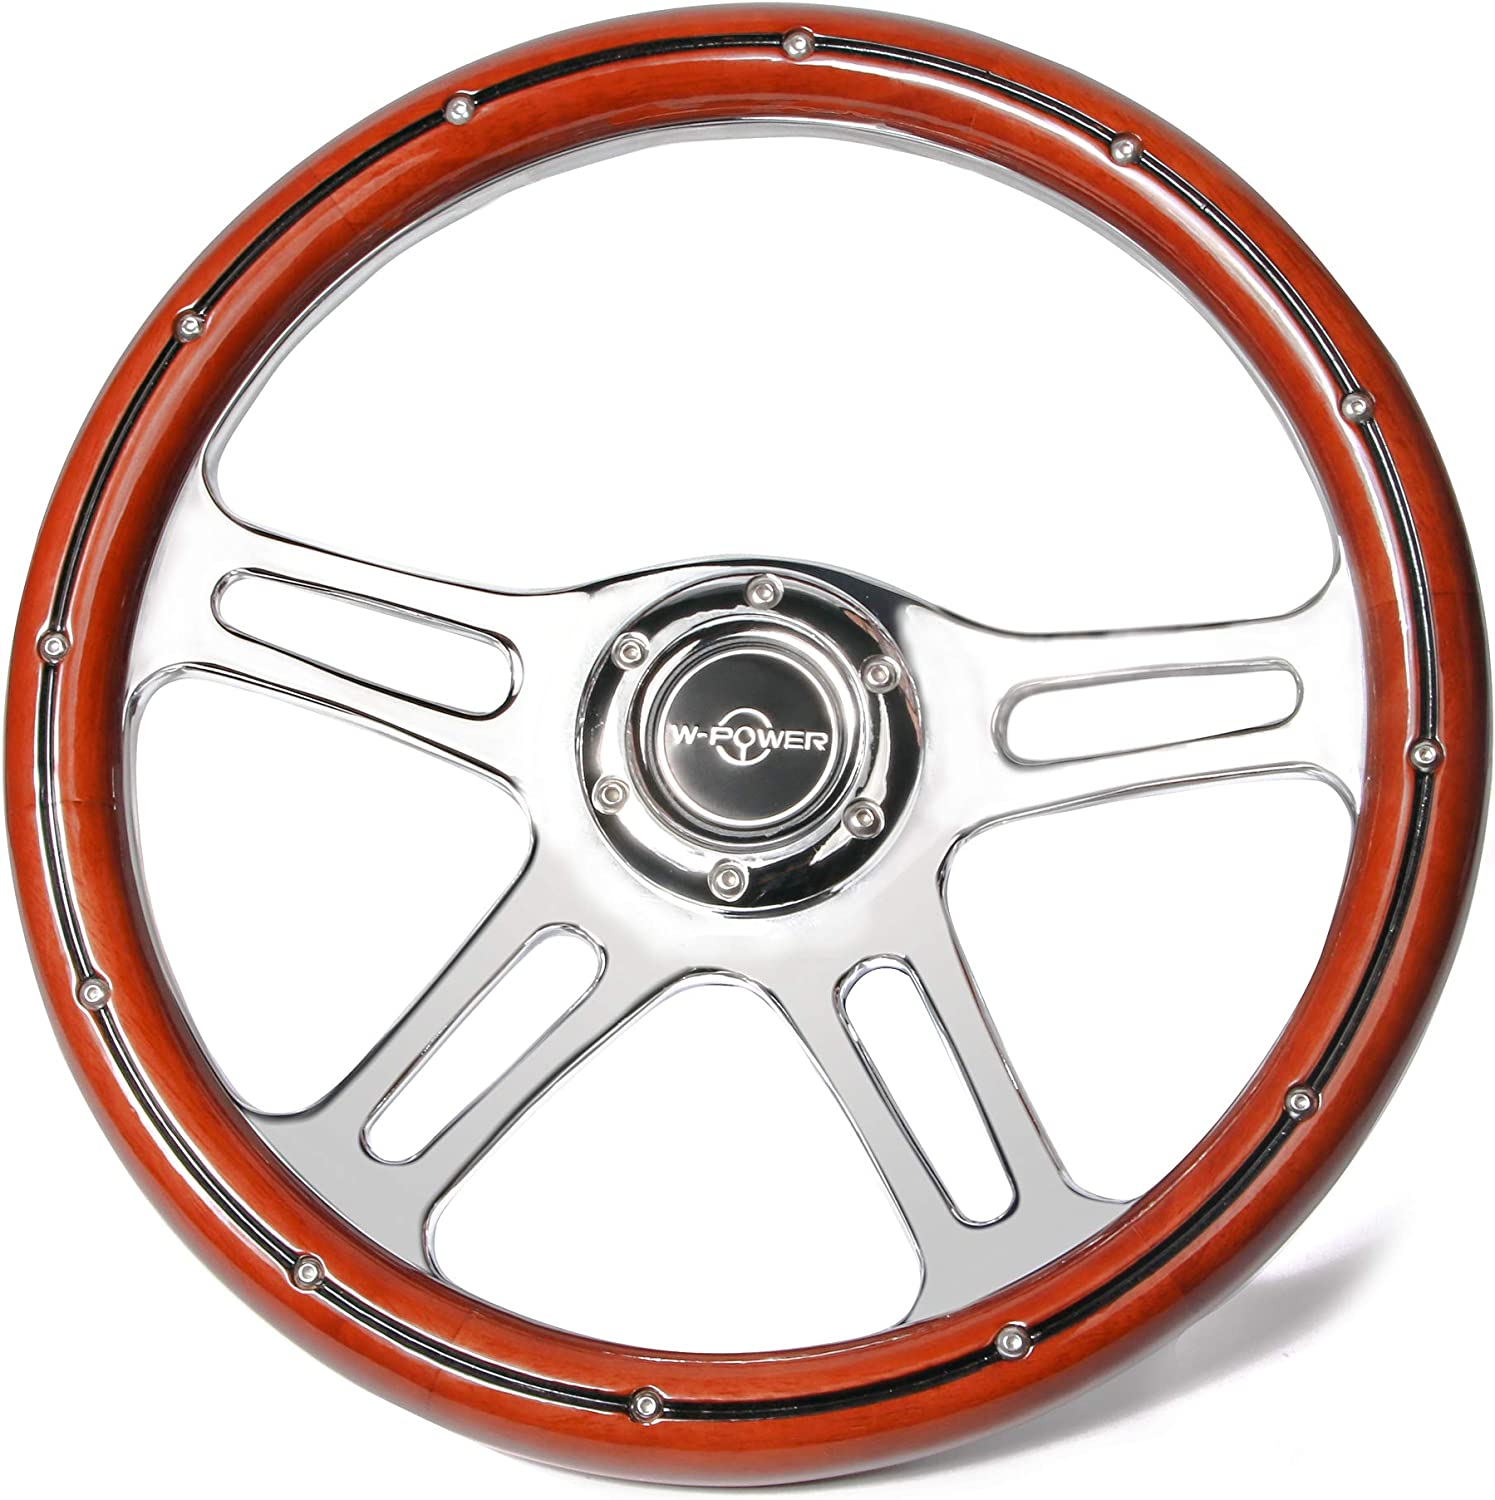 Universal 350MM Classic Wood Popular shop is the lowest At the price price challenge Steering Wheel W 14 Rivet Inch With